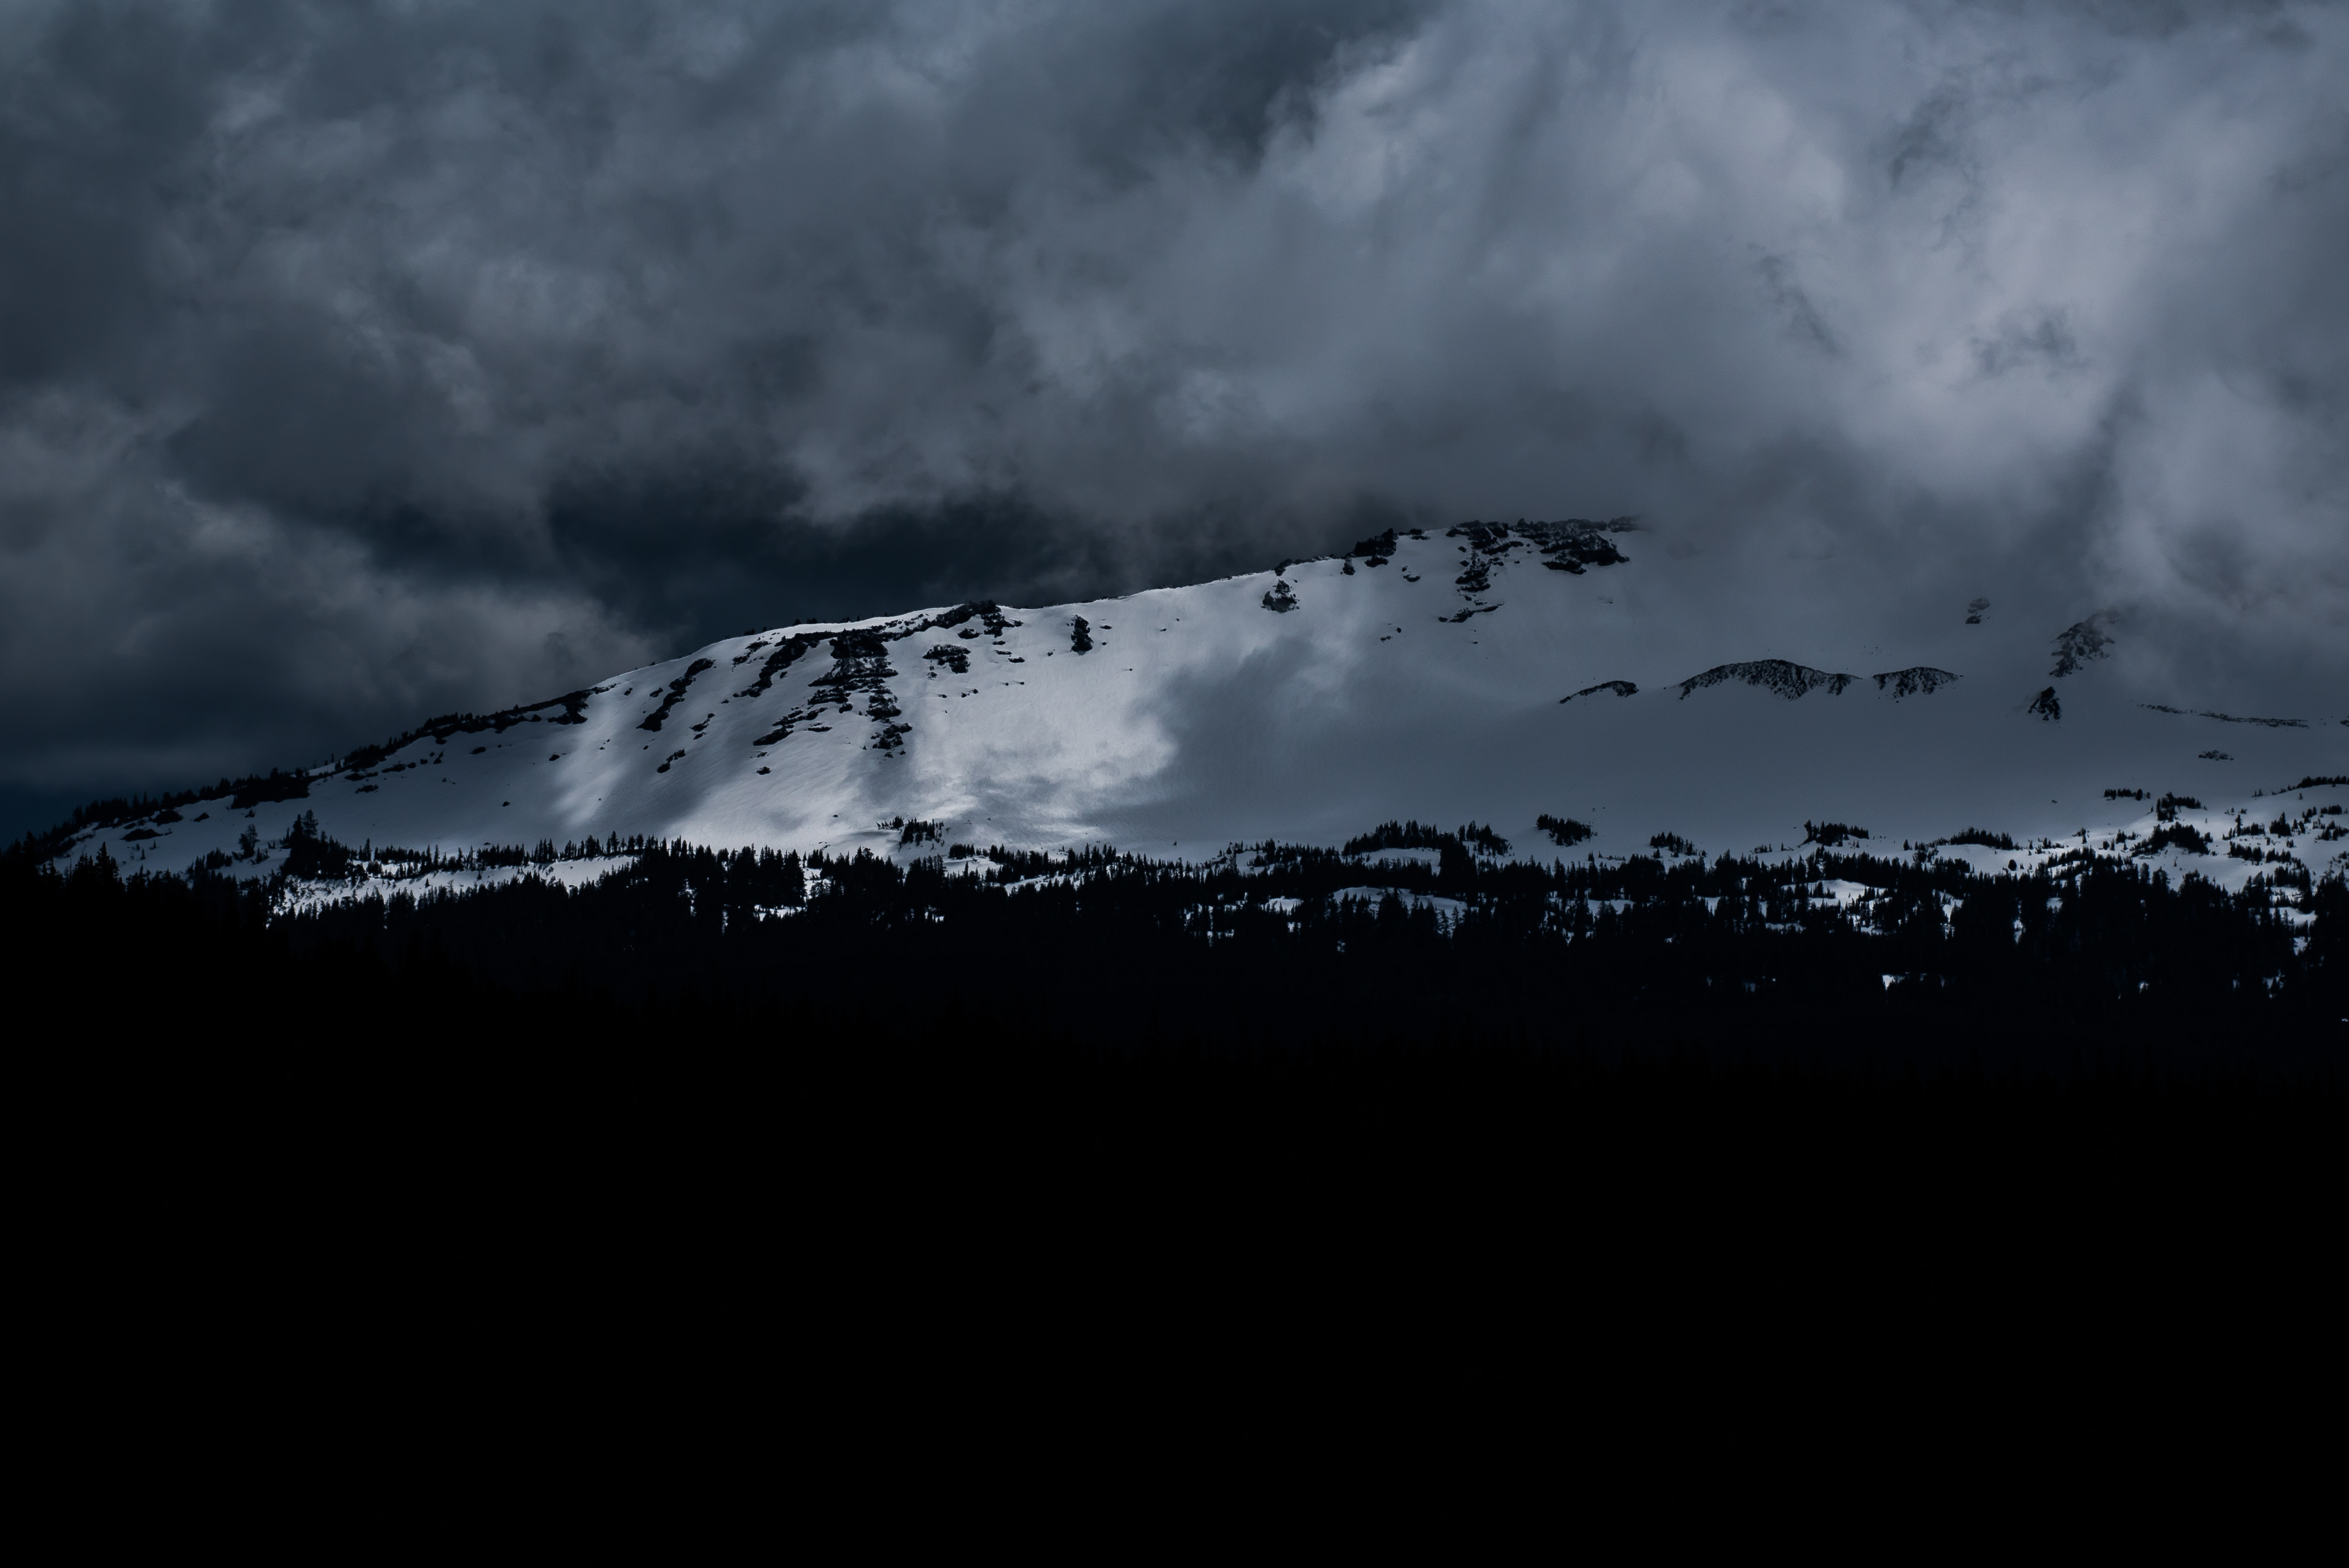 A mountain ridge with snow-covered slopes under an overcast sky in Silverthorne